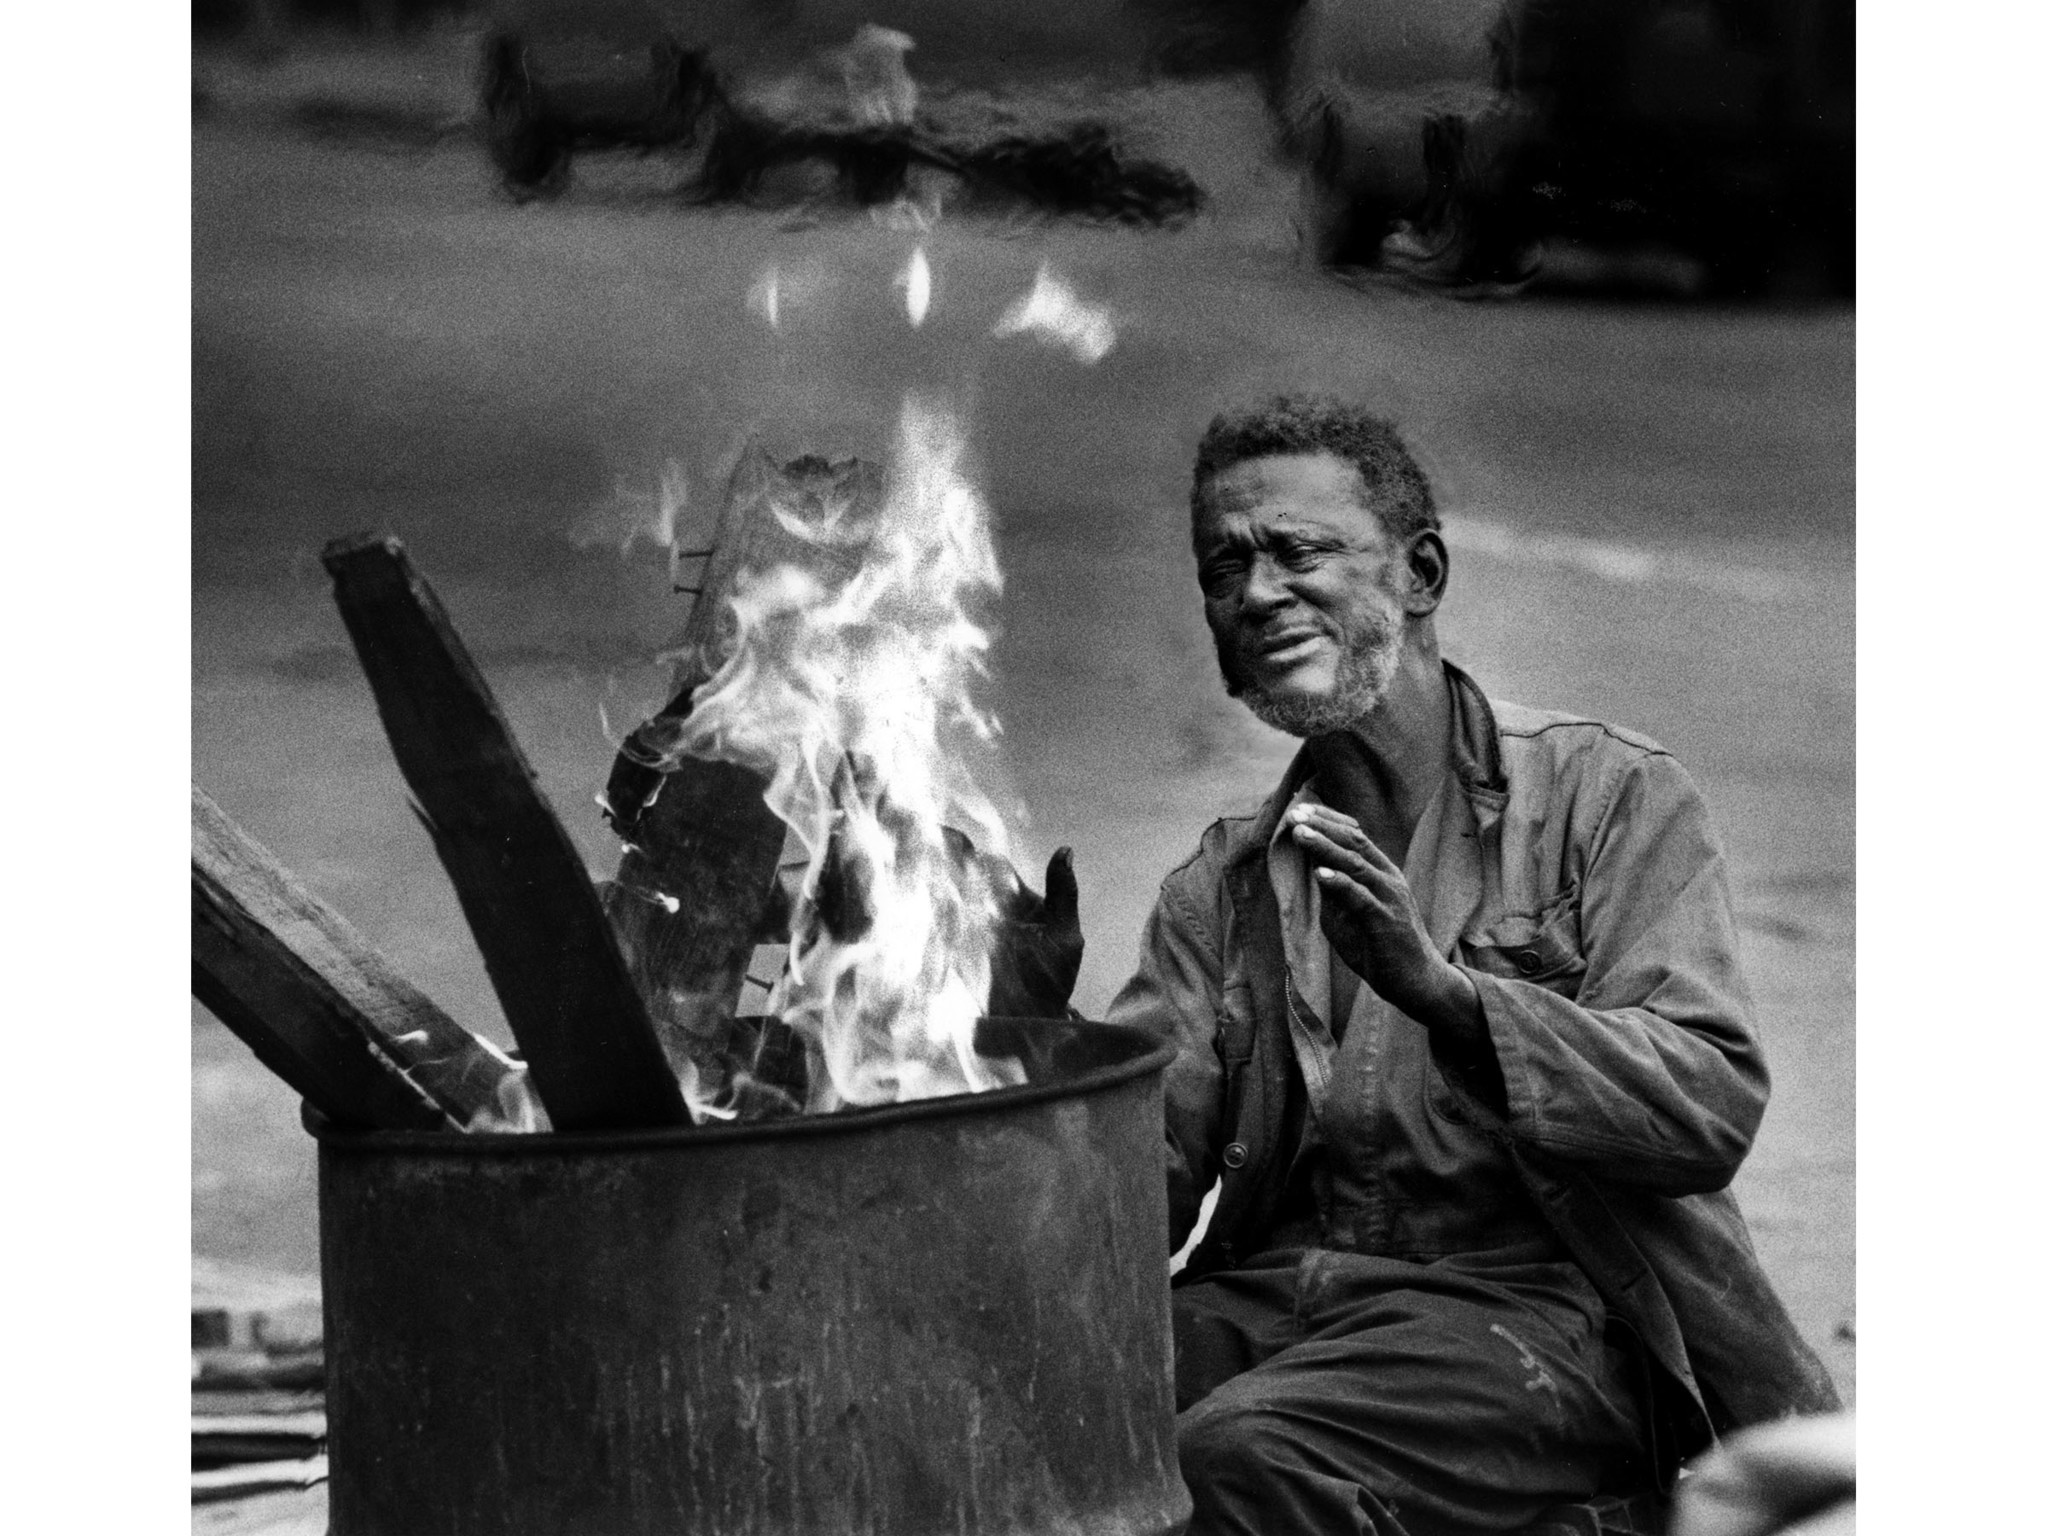 Dec. 28, 1988: Audridge Robertson keeps warm by a fire in downtown Los Angeles. This photo appeared